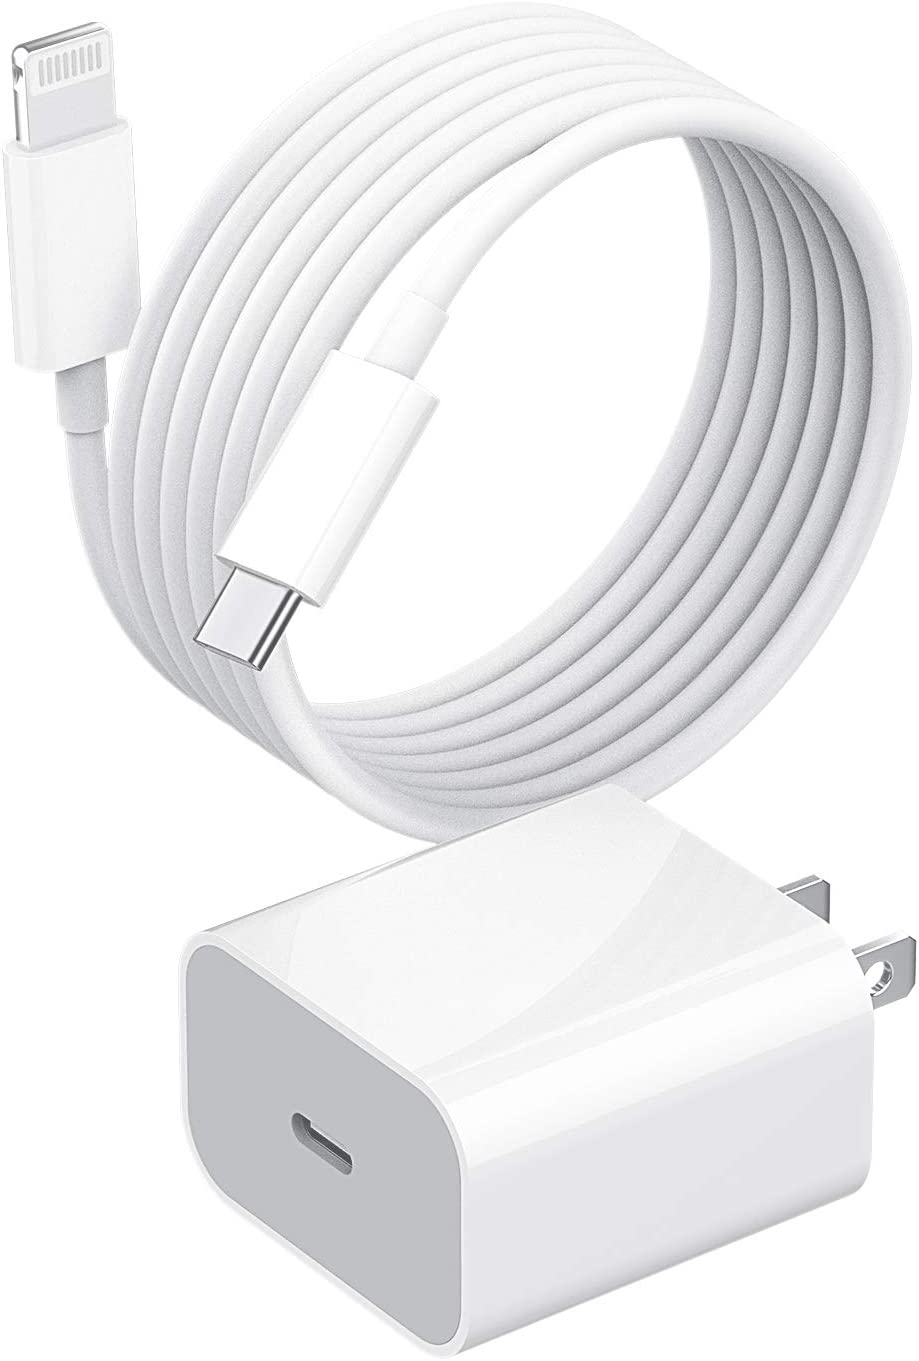 Apple MFi Certified,USB C Fast PD Wall Charger Block with 5ft Lightning Cable 20w Power Charging Adapter Quick Box for Ipad ARI iPhone 11 12 PRO MAX Mini XS XR SE2 8Plus Airpod Cord Samsung Type Plug